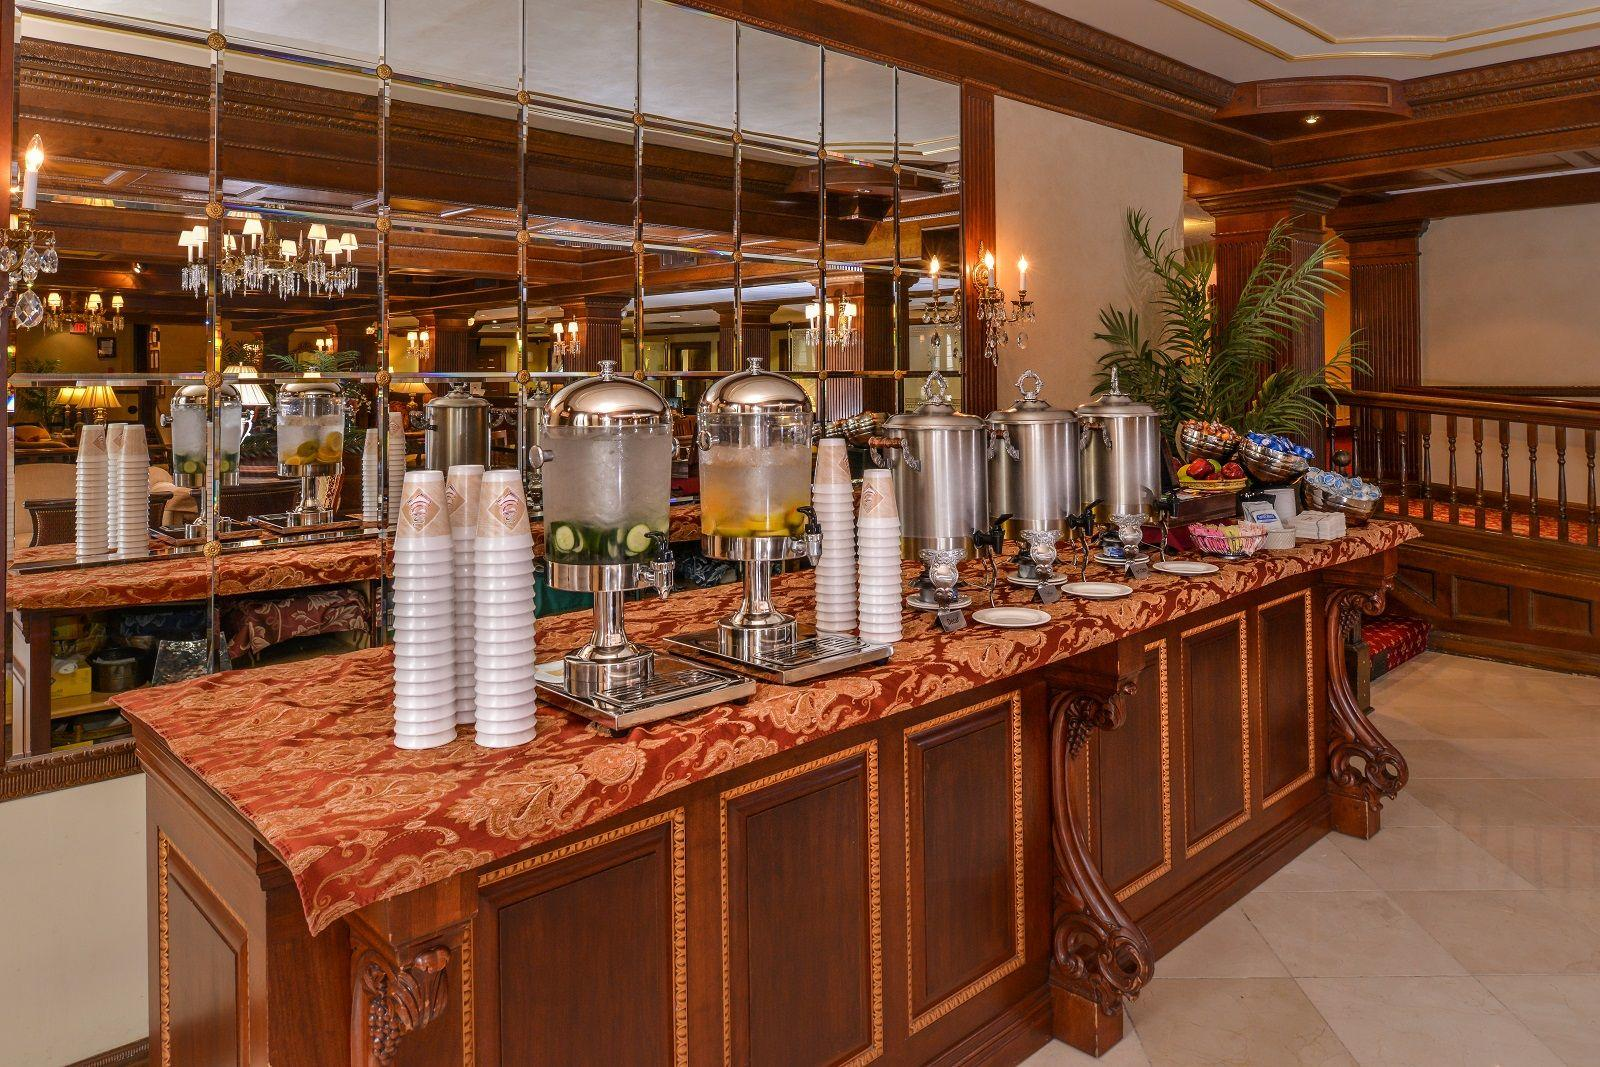 Robust bar with various drinks